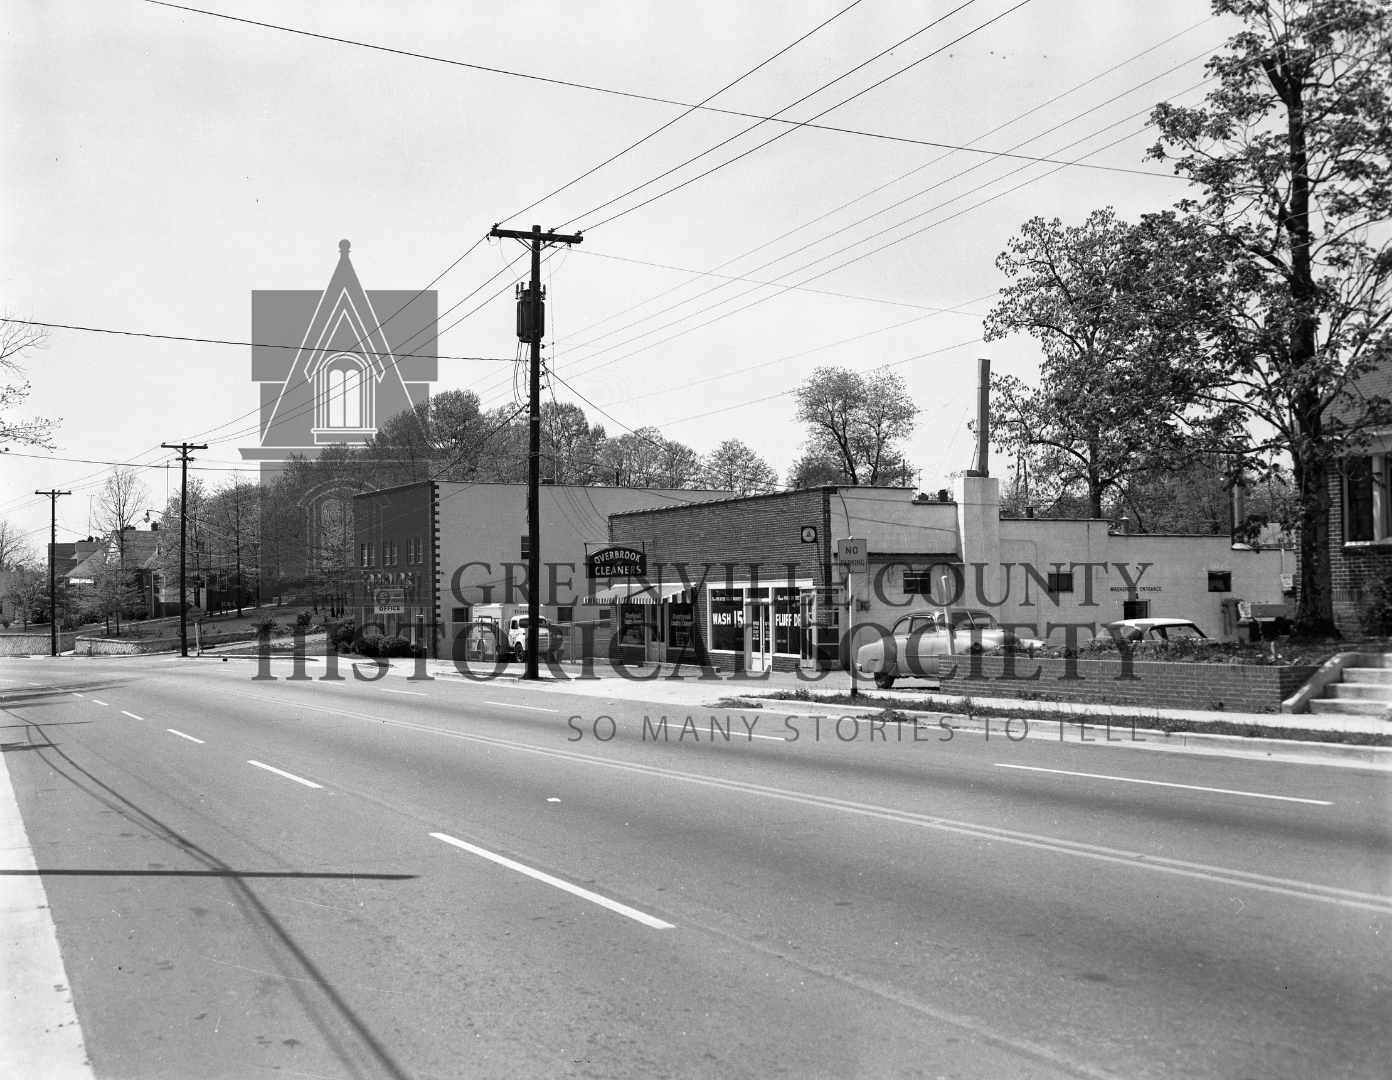 Overbrook Cleaners + Foremost Dairy Offices (soon to be Overbrook Village) in 1962 | Photo via the Joe Jordan Collection at the Greenville County Historical Society